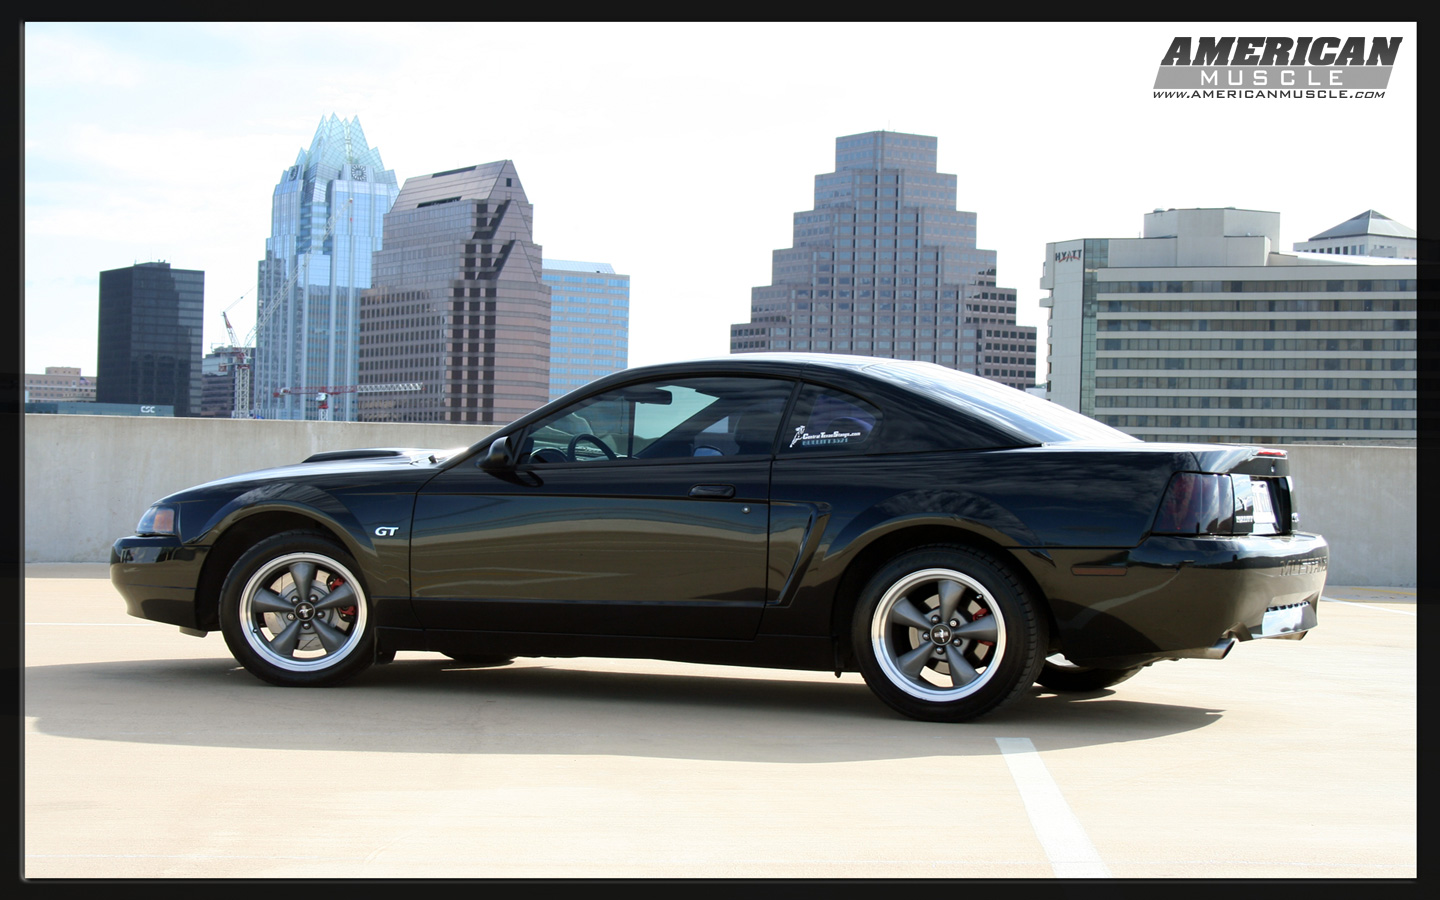 Ford Mustang Wallpapers Mustang Backgrounds Americanmusclecom